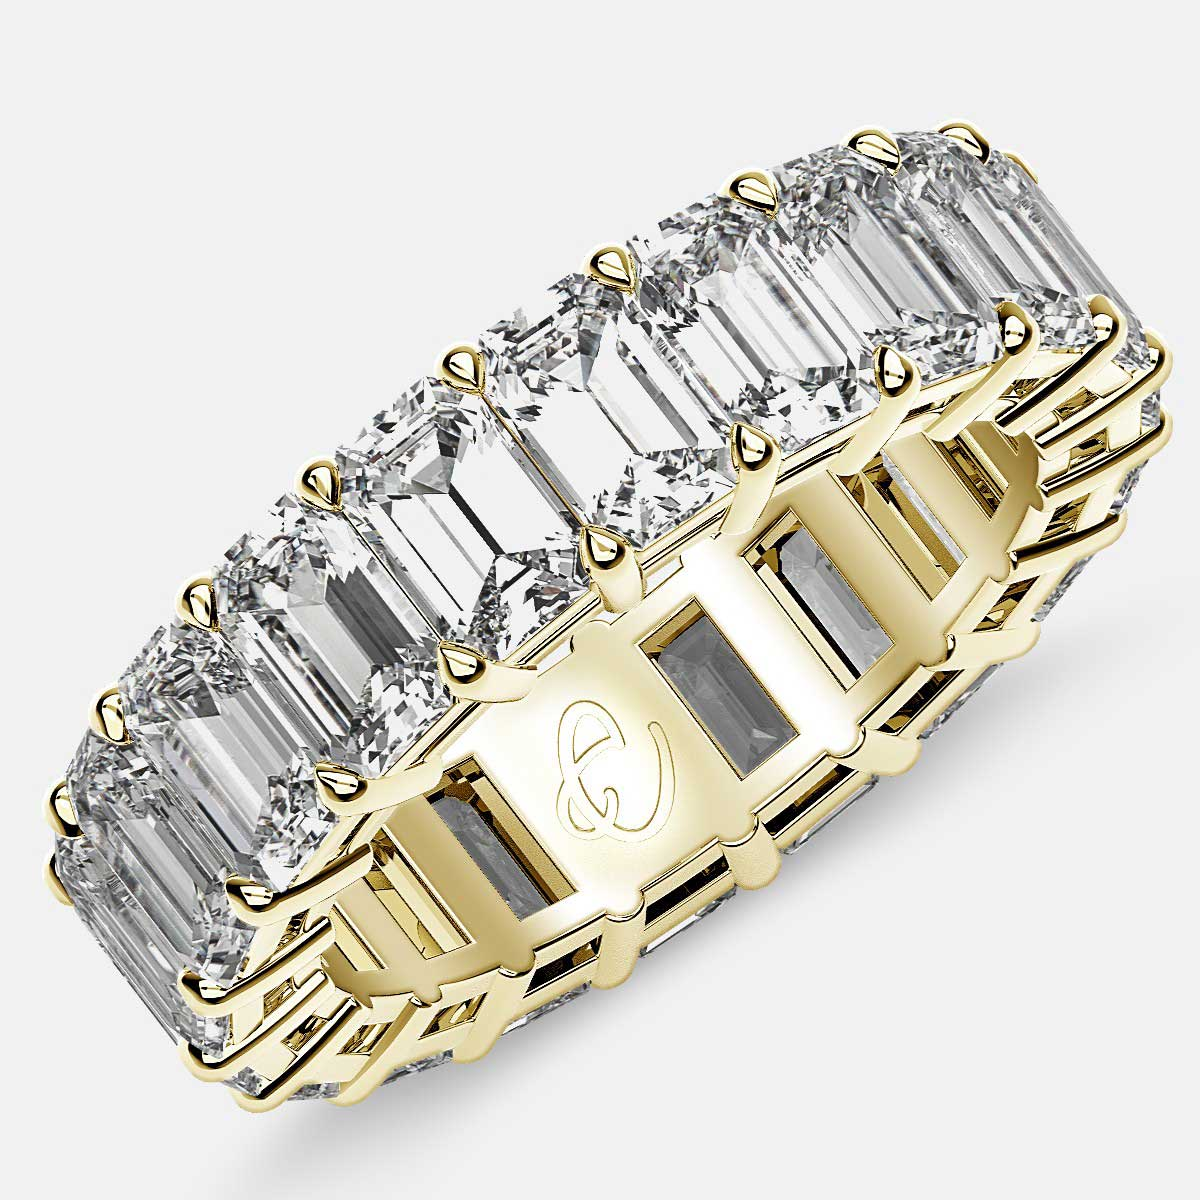 Eternity Ring with Prong Set Emerald Cut Diamonds in 18k Yellow Gold